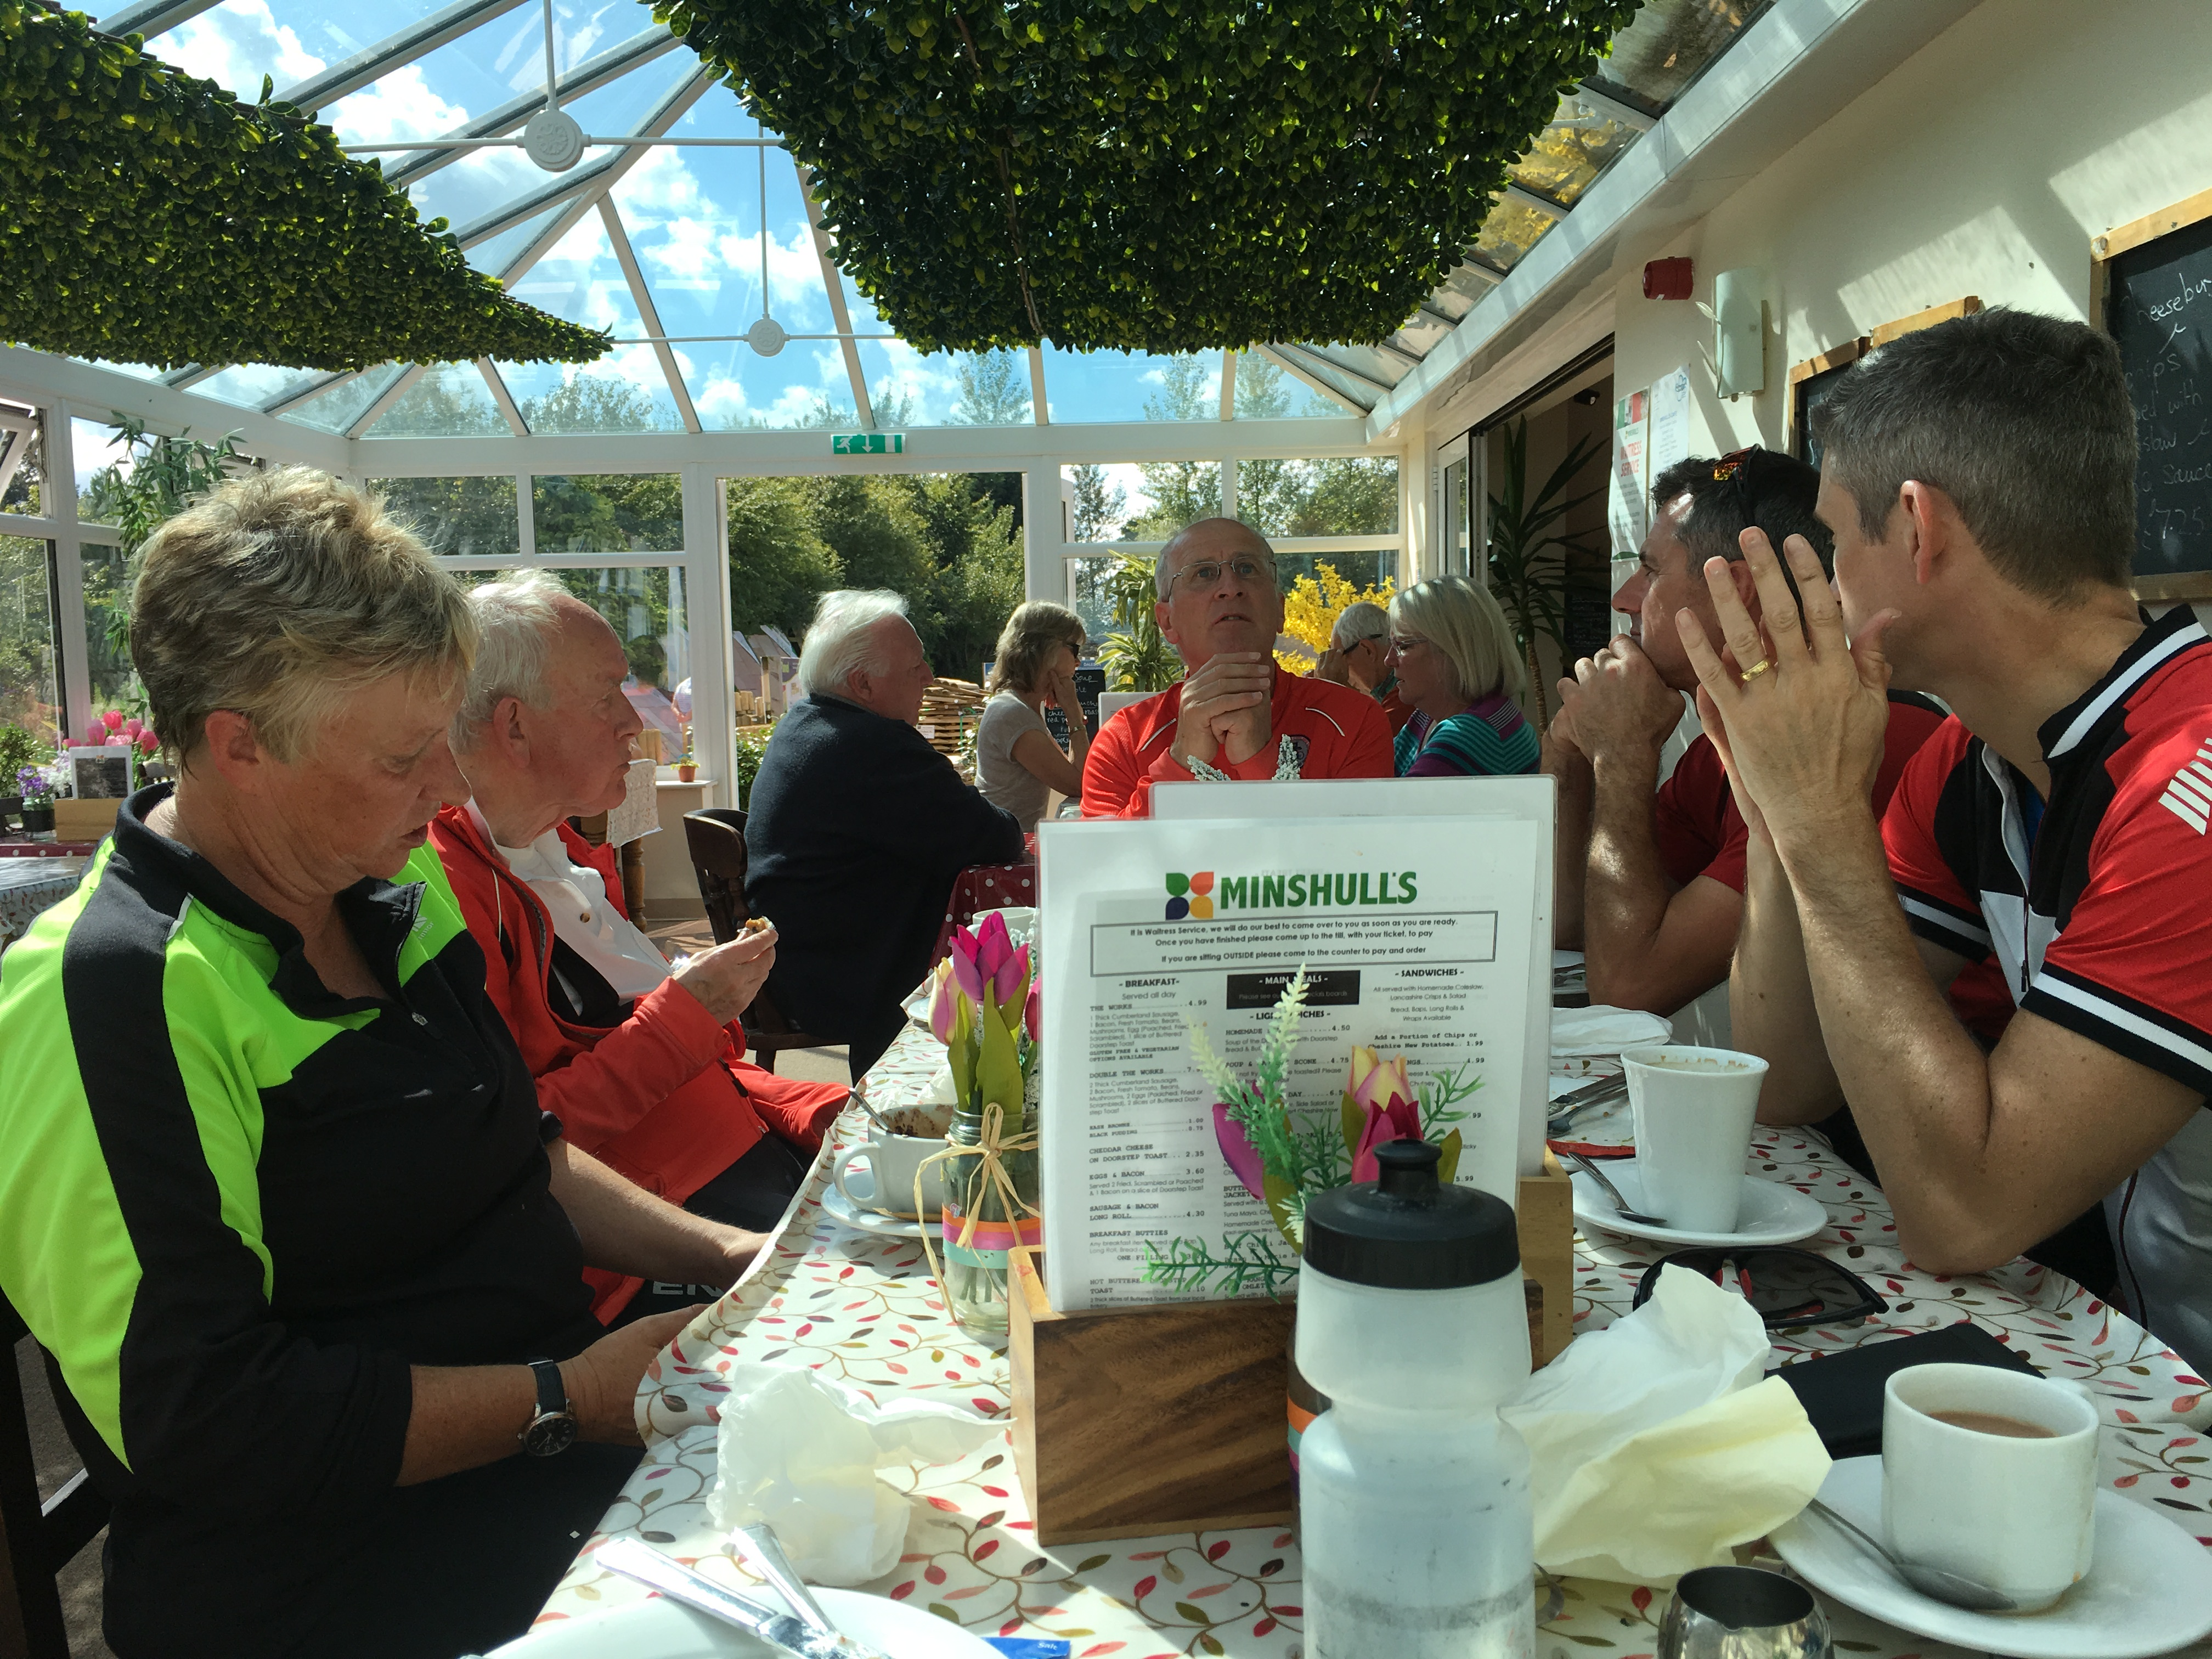 Lunchtime at Minshulls. The riders' repast.